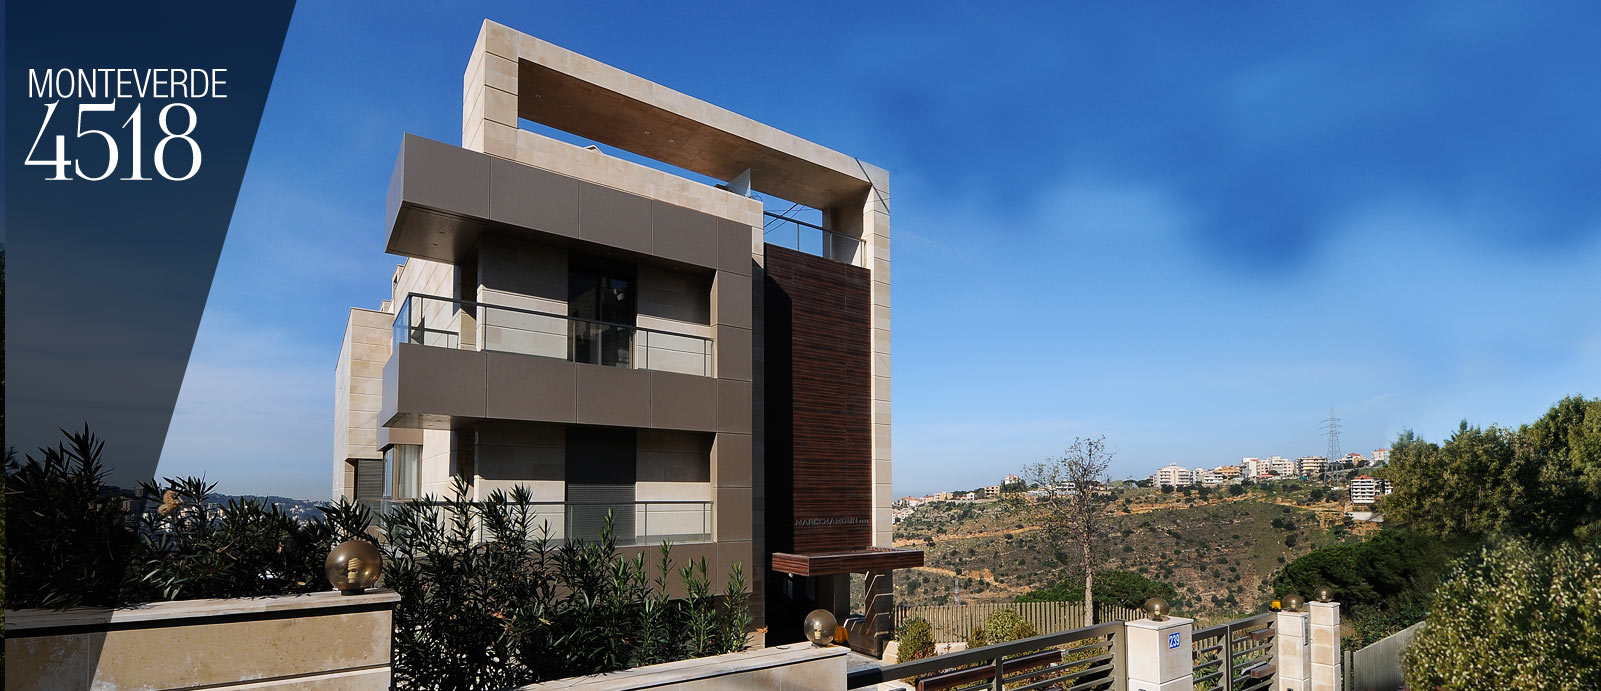 Apartments for sale in Monteverde MCP 4518